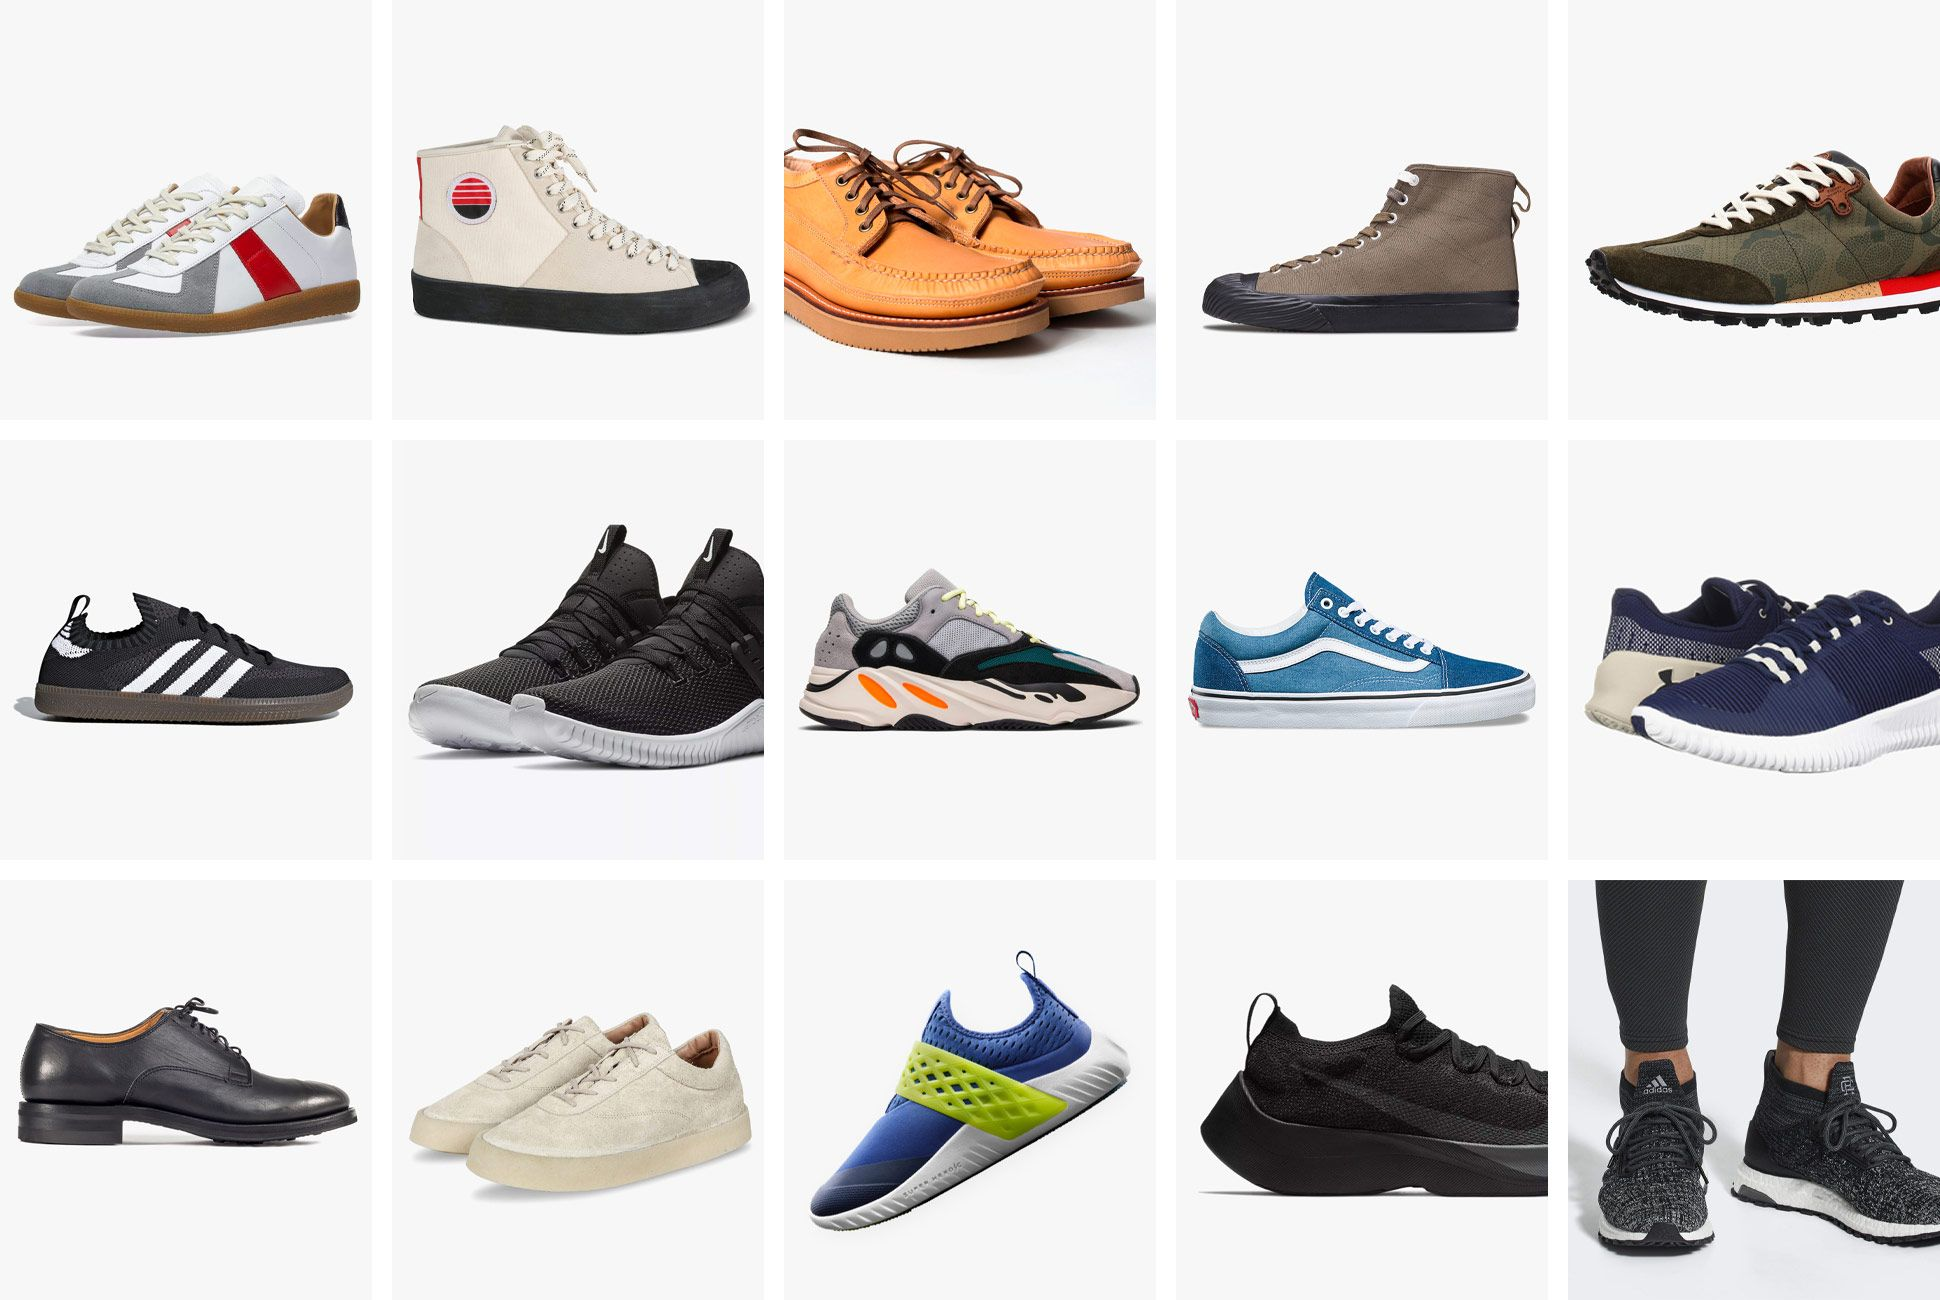 The Top Sneakers and Shoes of 2018